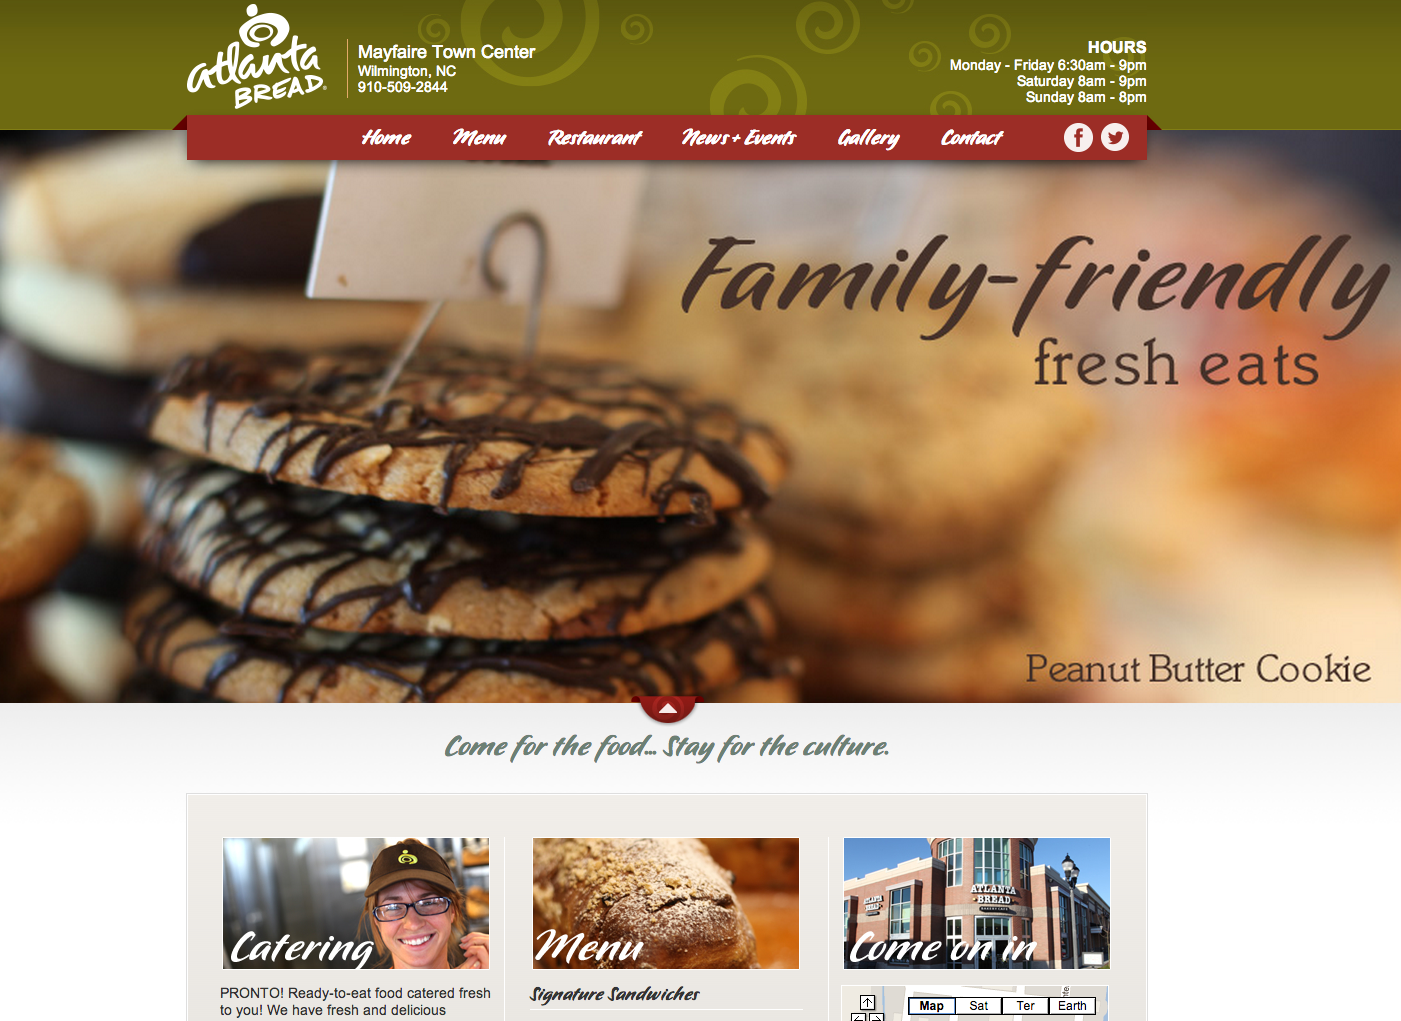 Atlanta Bread Company at Mayfaire Website Design by Sage Island